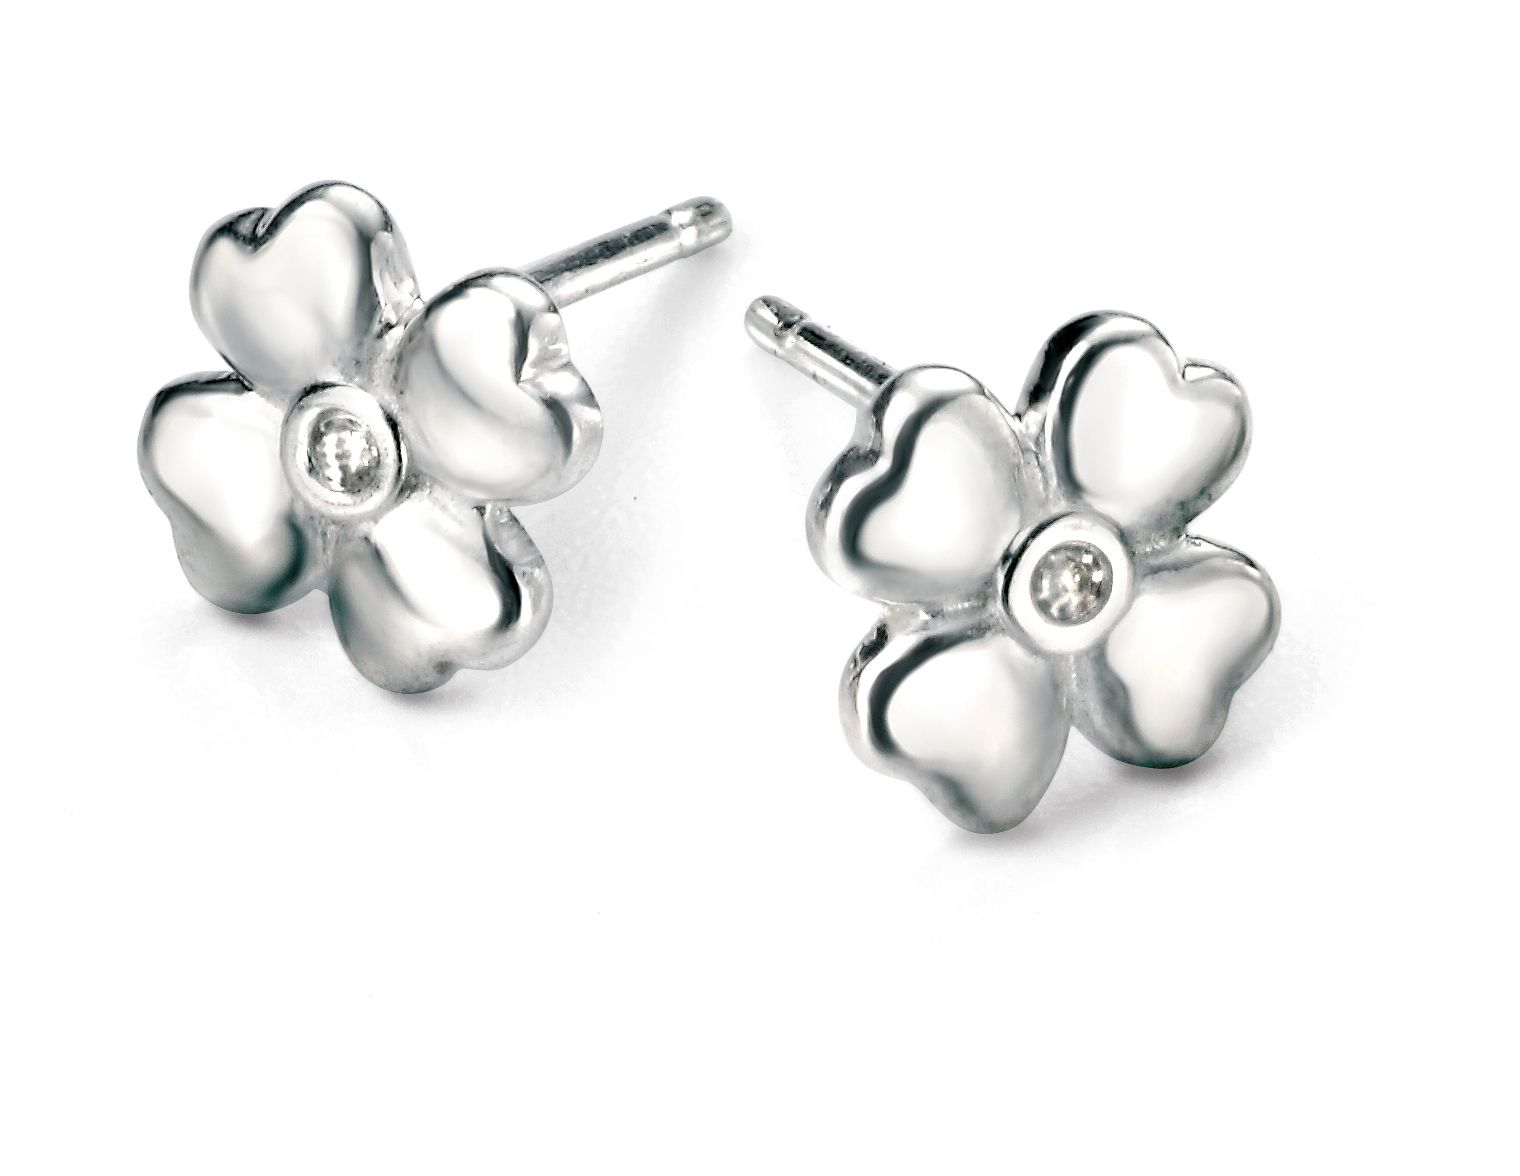 D for Diamond Clover Stud Earrings v5NT9L8Dc6